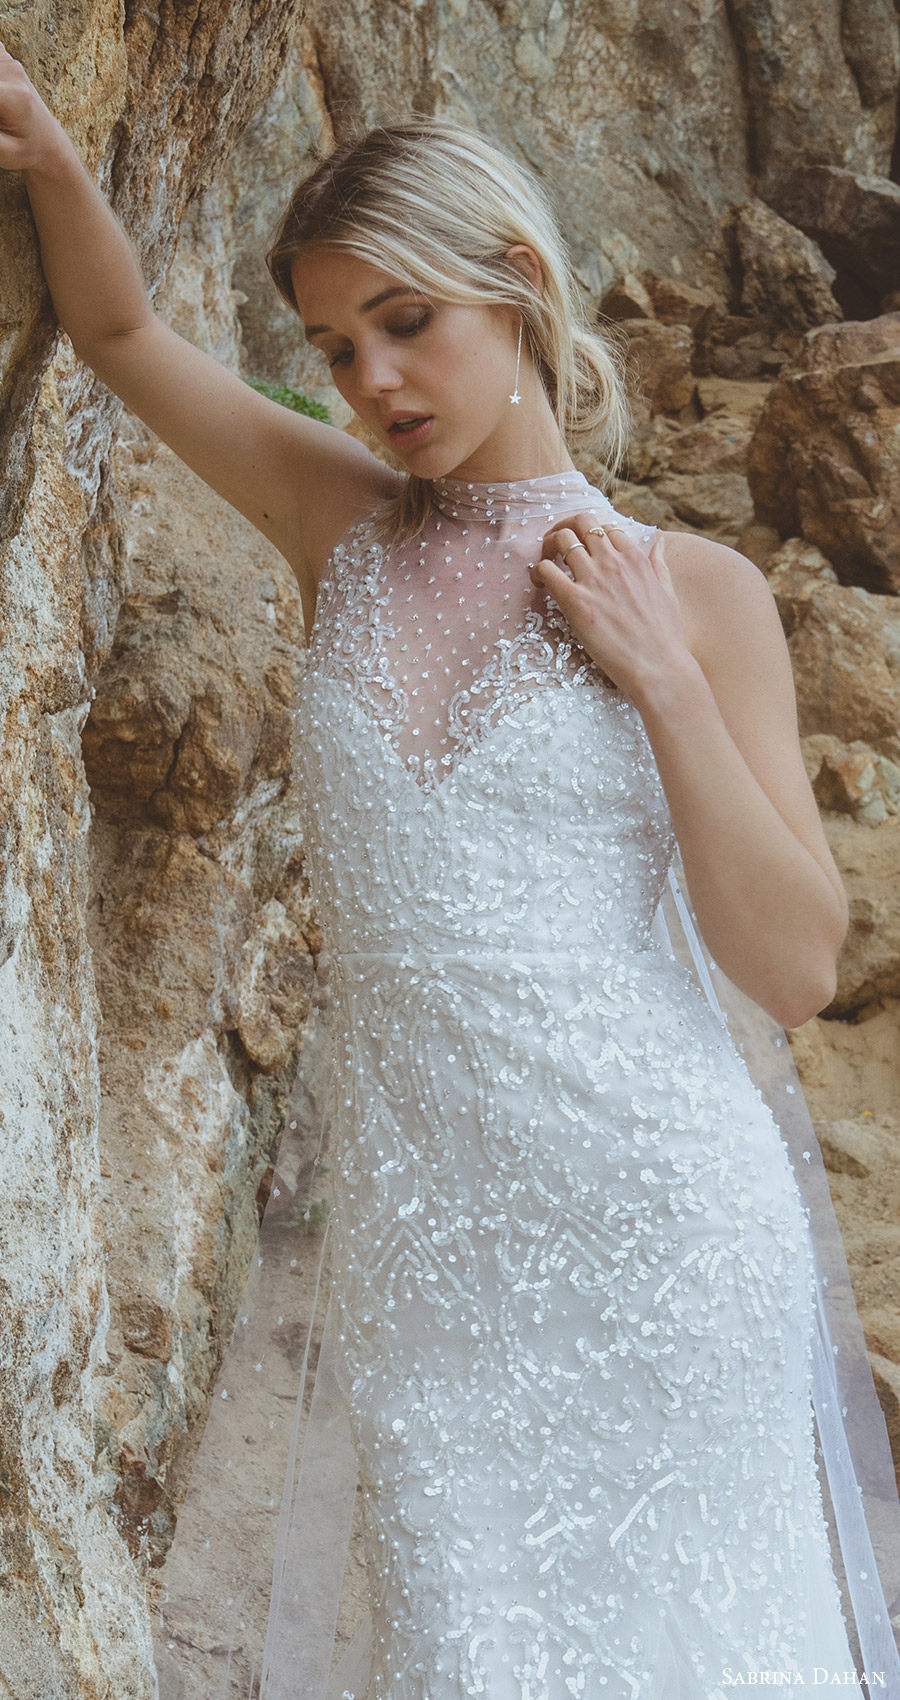 sabrina-dahan-spring-2018-bridal-sleeveless-illusion-high-neck-heavily-embellished-trumpet-wedding-dress-godet-skirt-lorainne-zfv-romantic-elegant.jpg